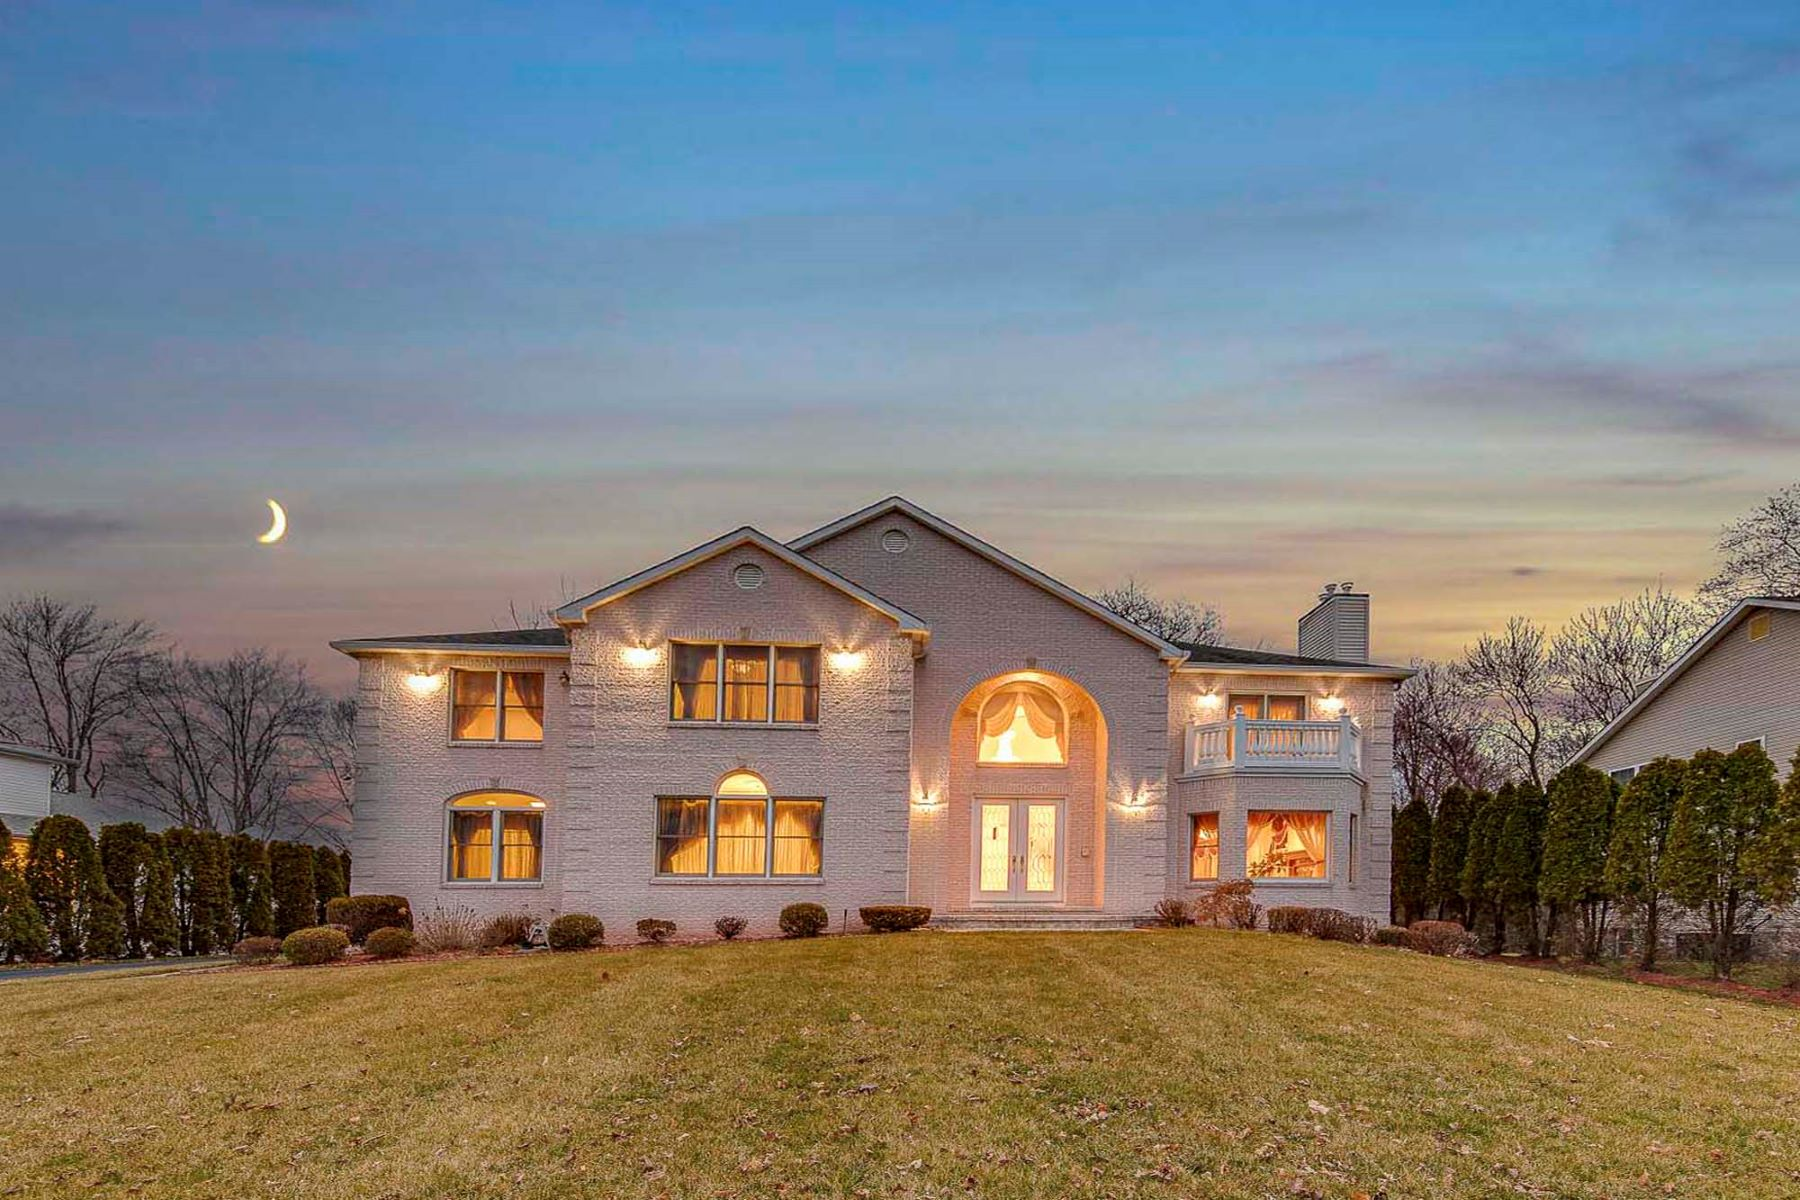 Single Family Homes for Sale at Luxury Home 720 Pascack Rd, Paramus, New Jersey 07652 United States